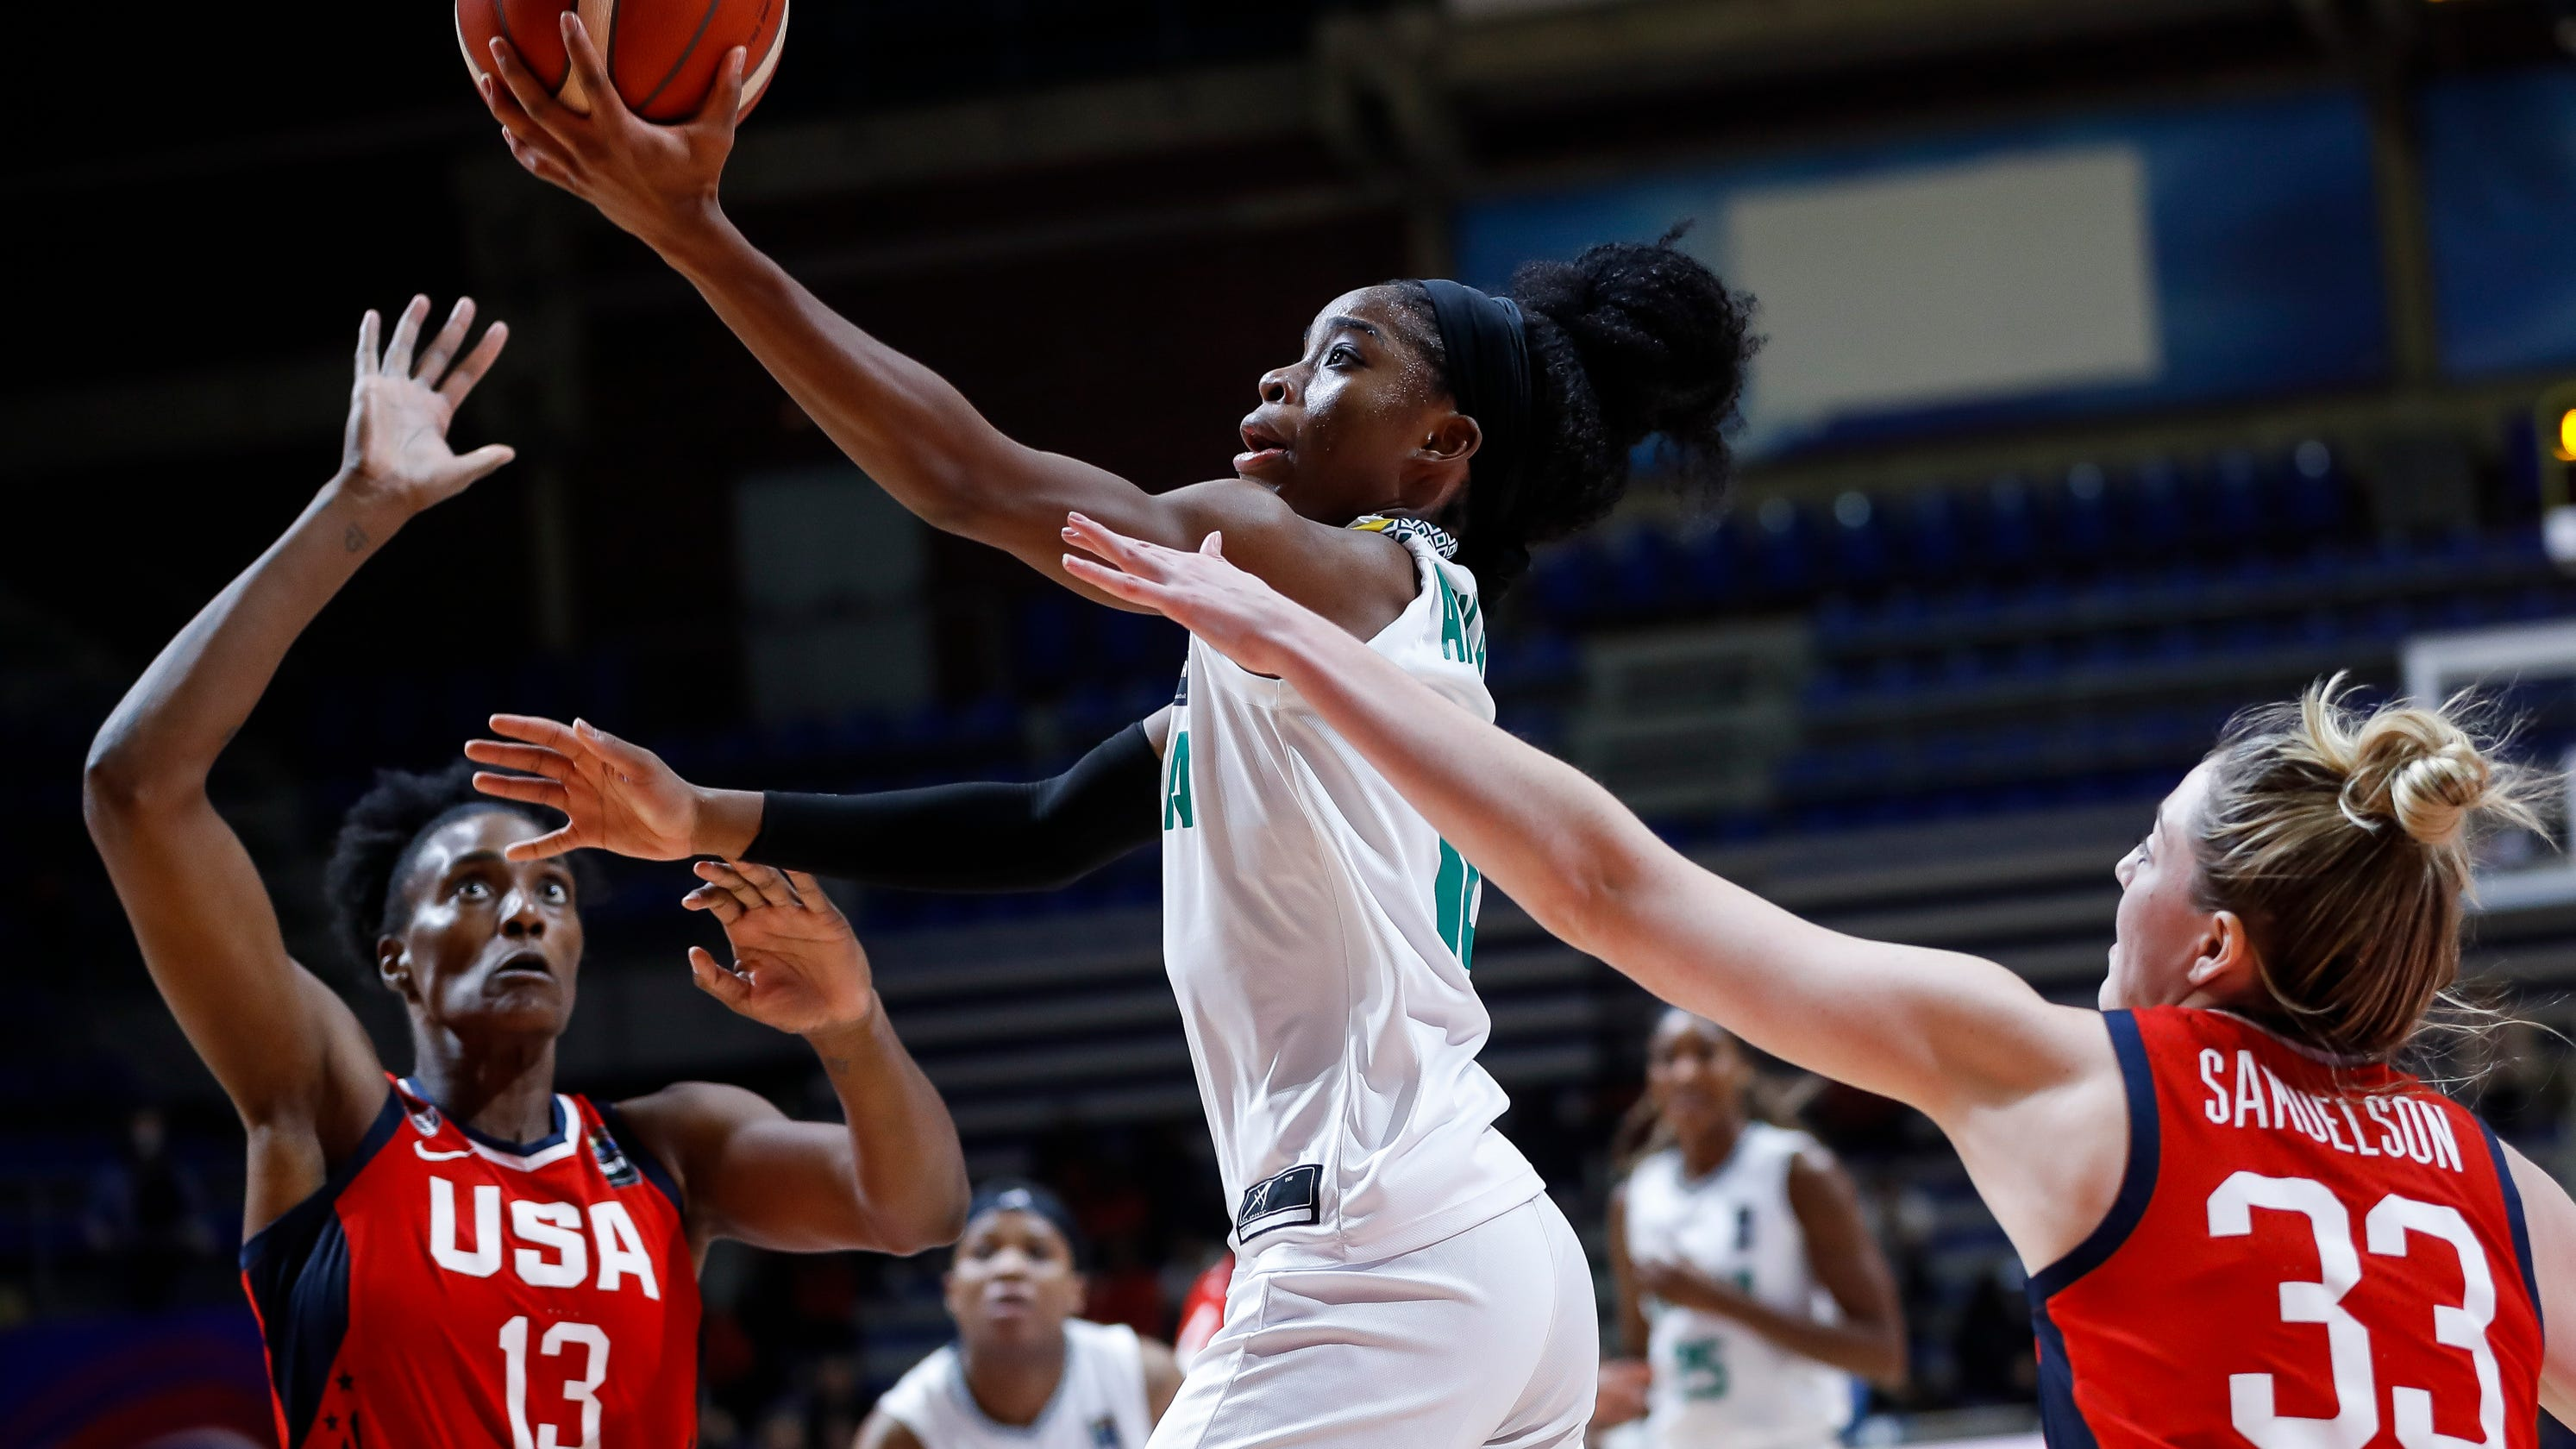 Promise Amukamara's persistence is carrying her to the Olympics